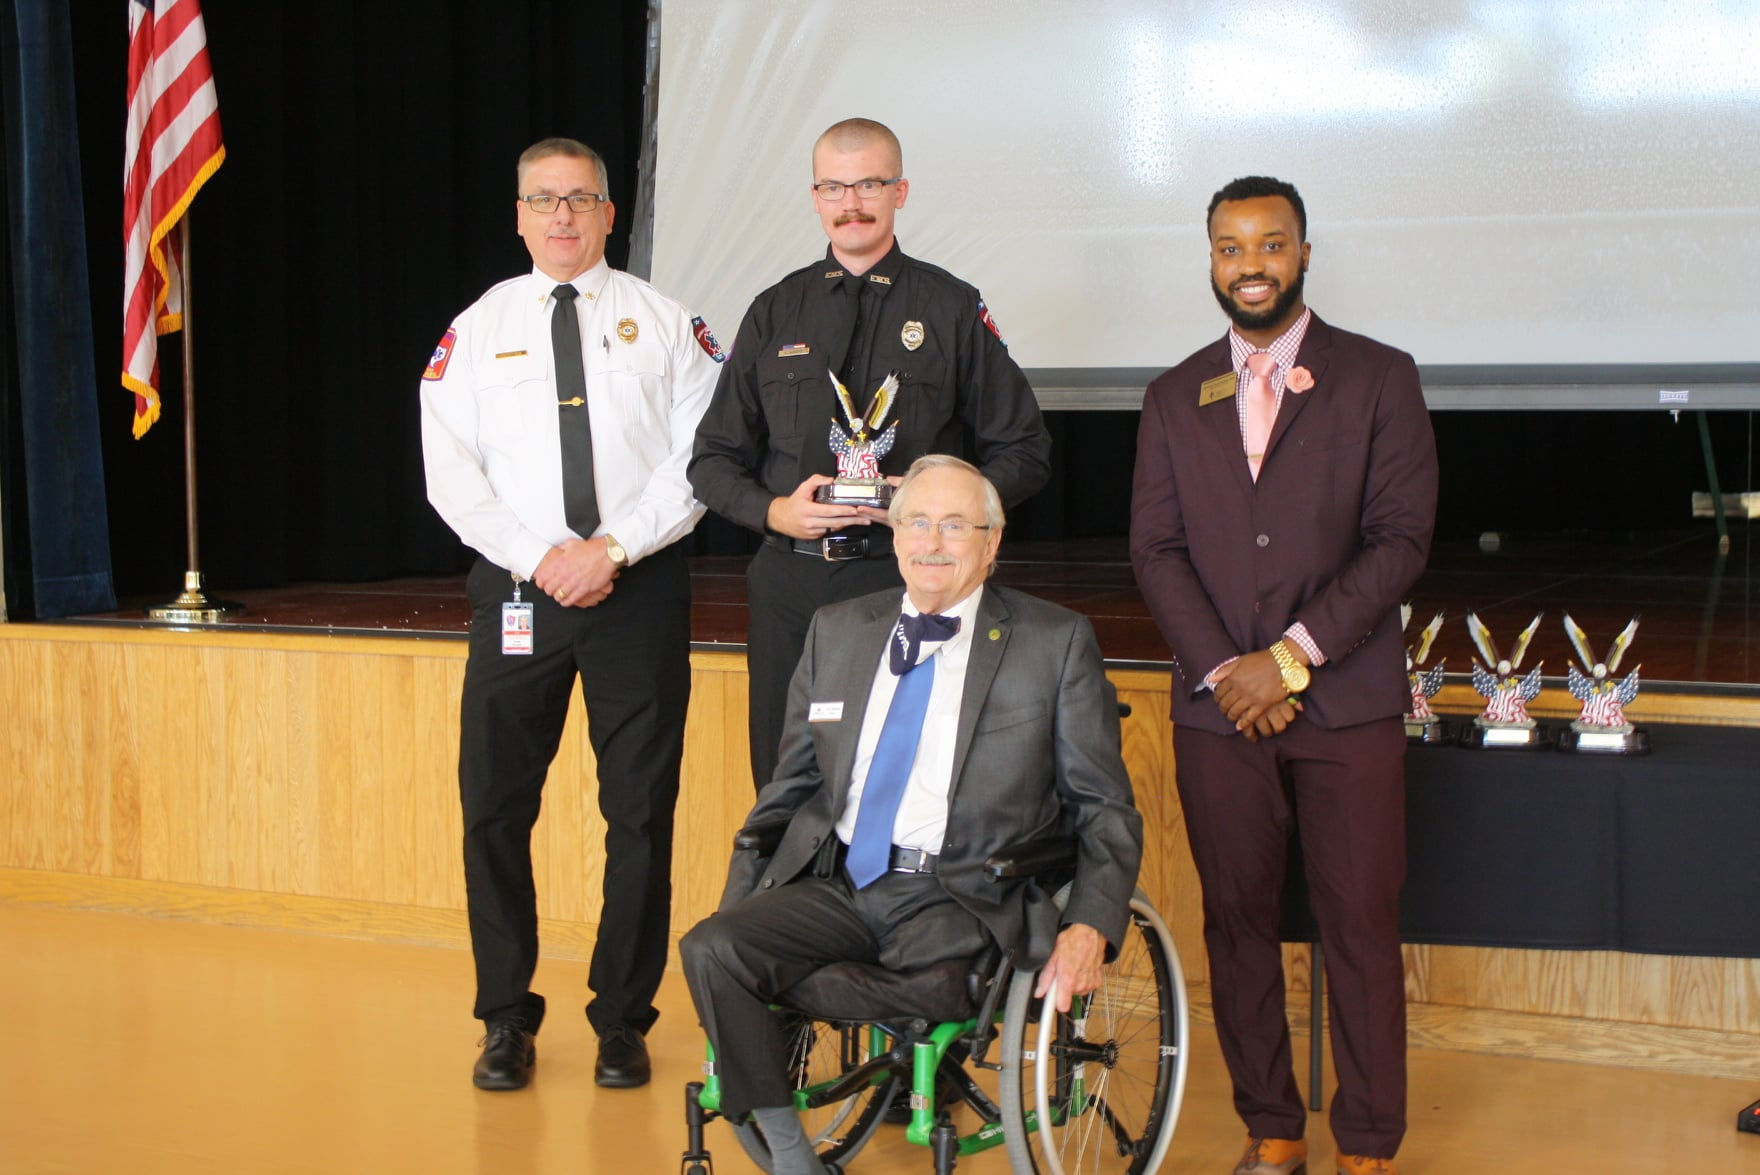 Image for RECAP: Your chamber honors first responders at Patriot Awards Luncheon